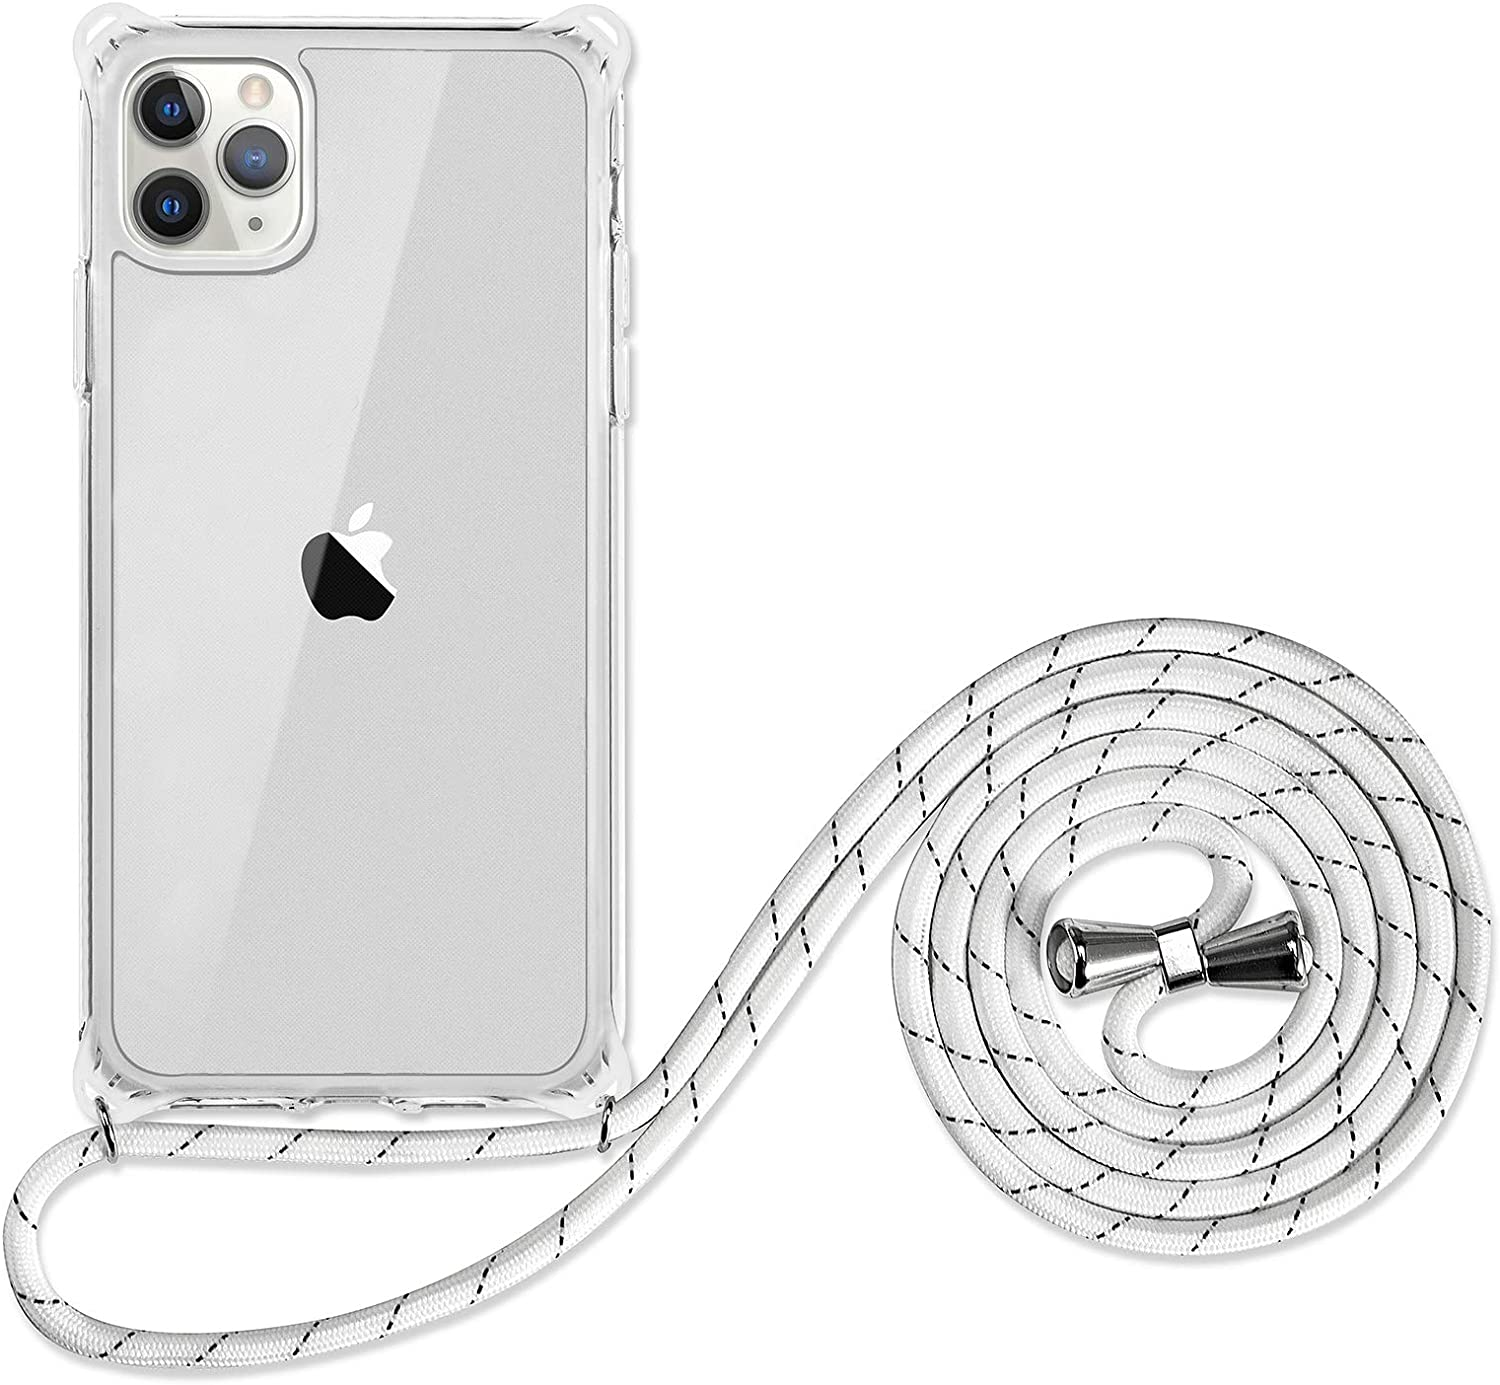 SZINTU for iPhone 11 Pro Max Crossbody Lanyard case[1.5m Anti-Fall] Cute Pattern Clear Design Transparent Soft&Flexible TPU Drop and Shockproof Protective Cover with Adjustable Neck Strap(Clear)